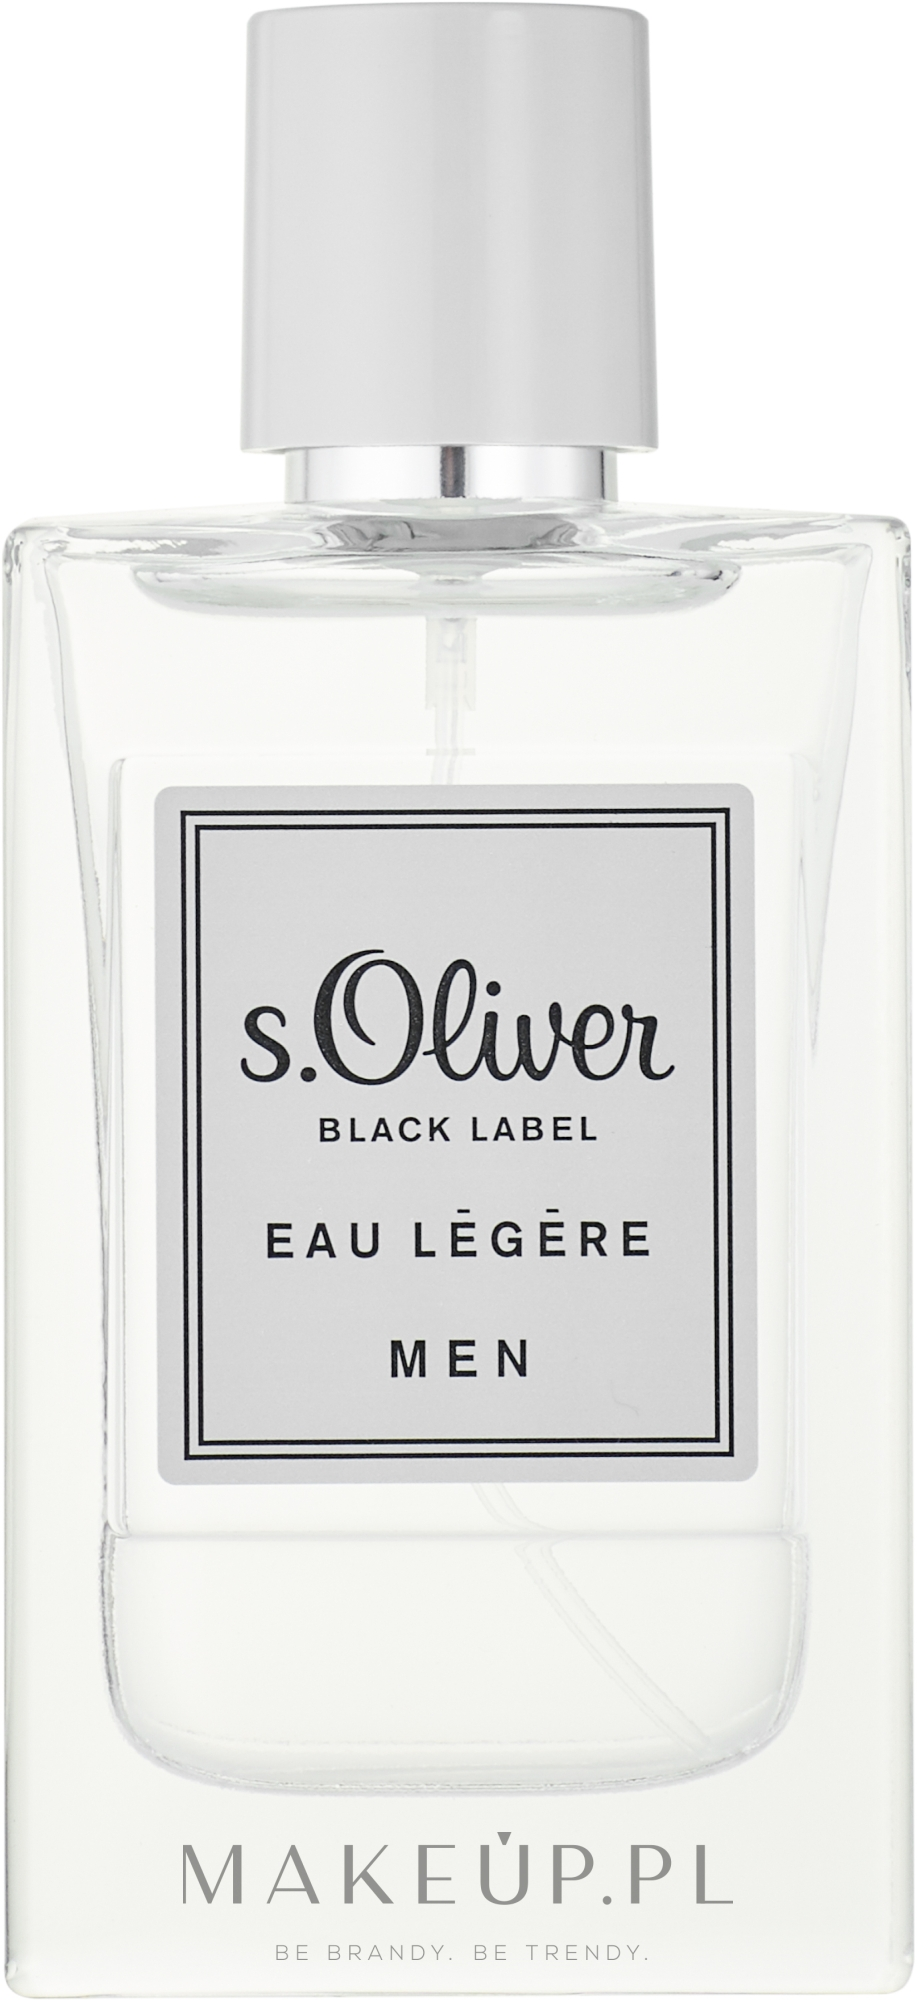 s.oliver black label eau legere men